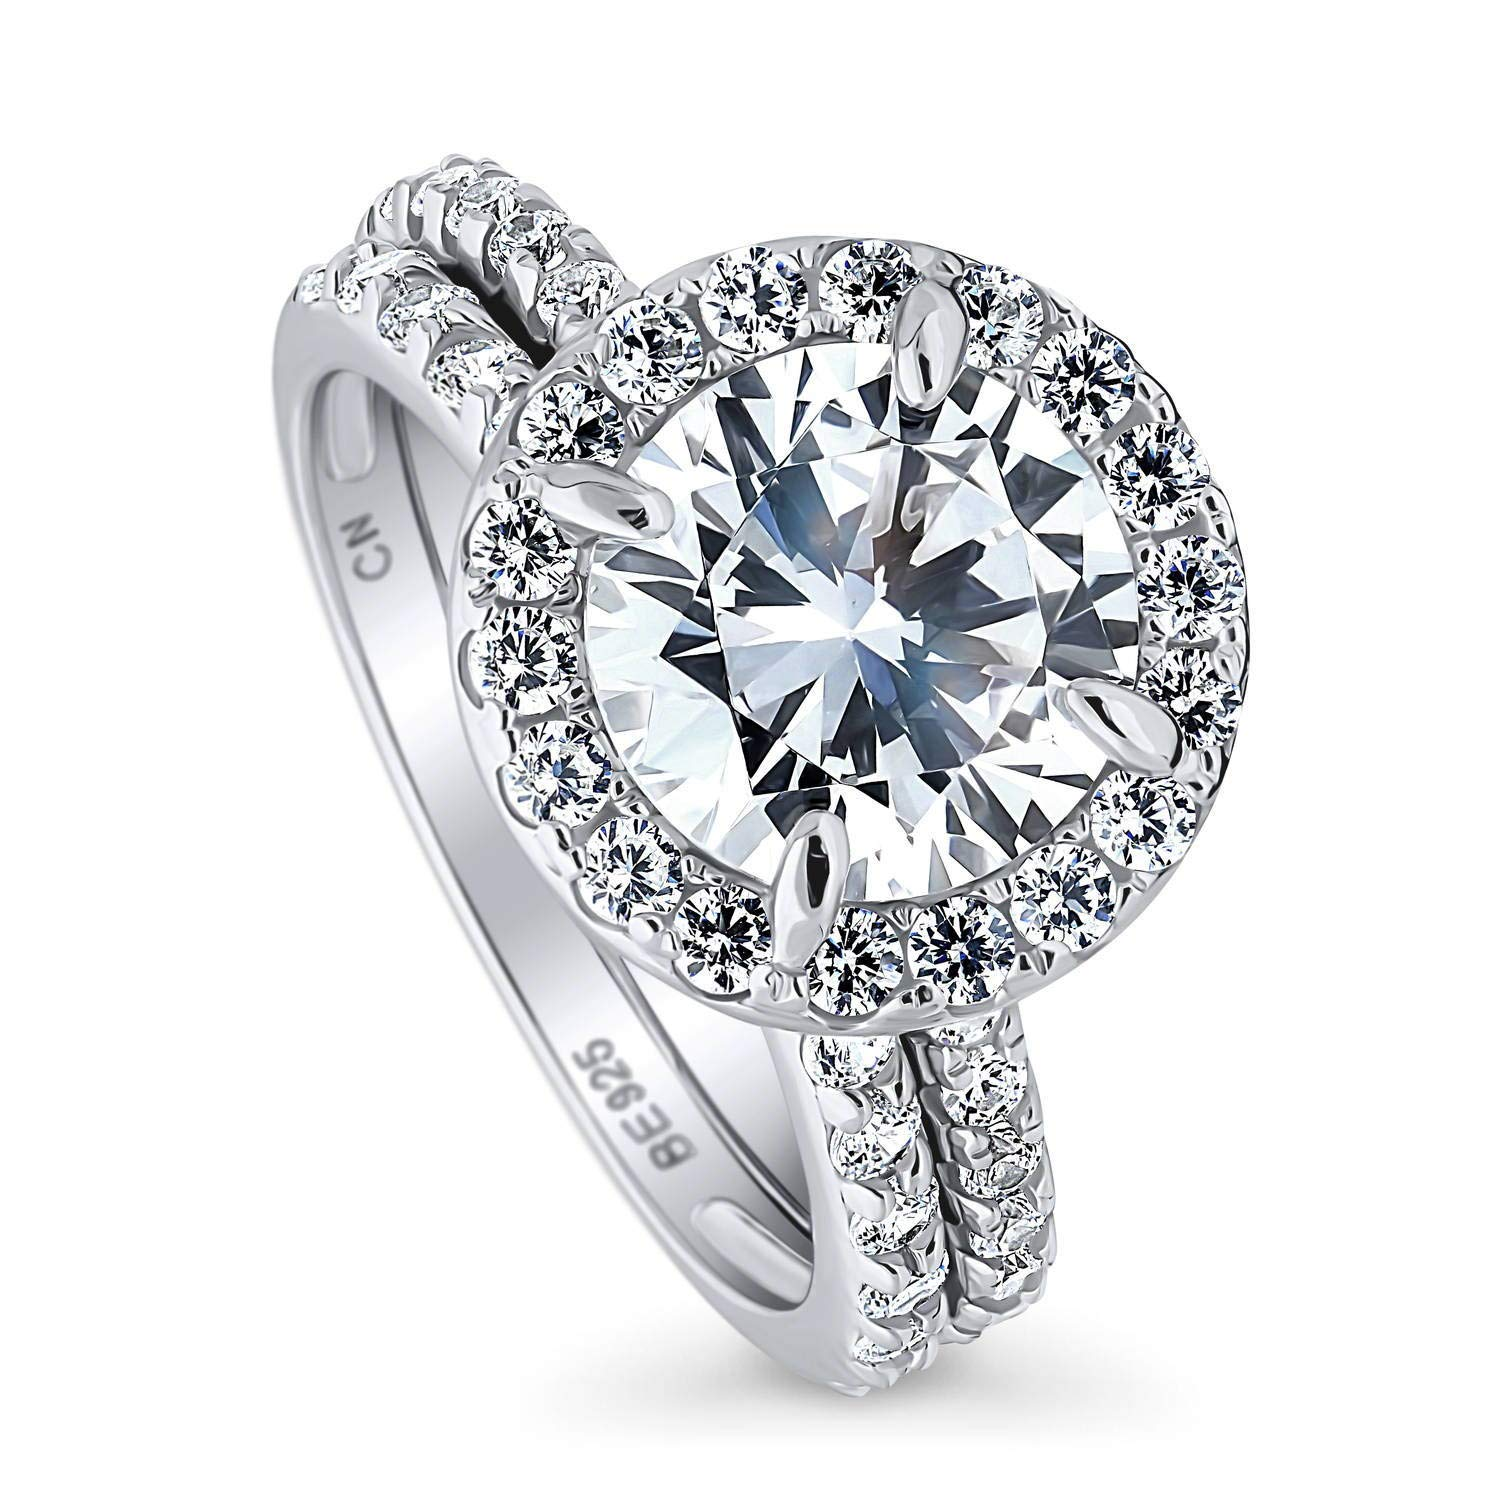 BERRICLE Rhodium Plated Sterling Silver Round Cubic Zirconia CZ Halo Engagement Wedding Ring Set 3.76 CTW Size 10